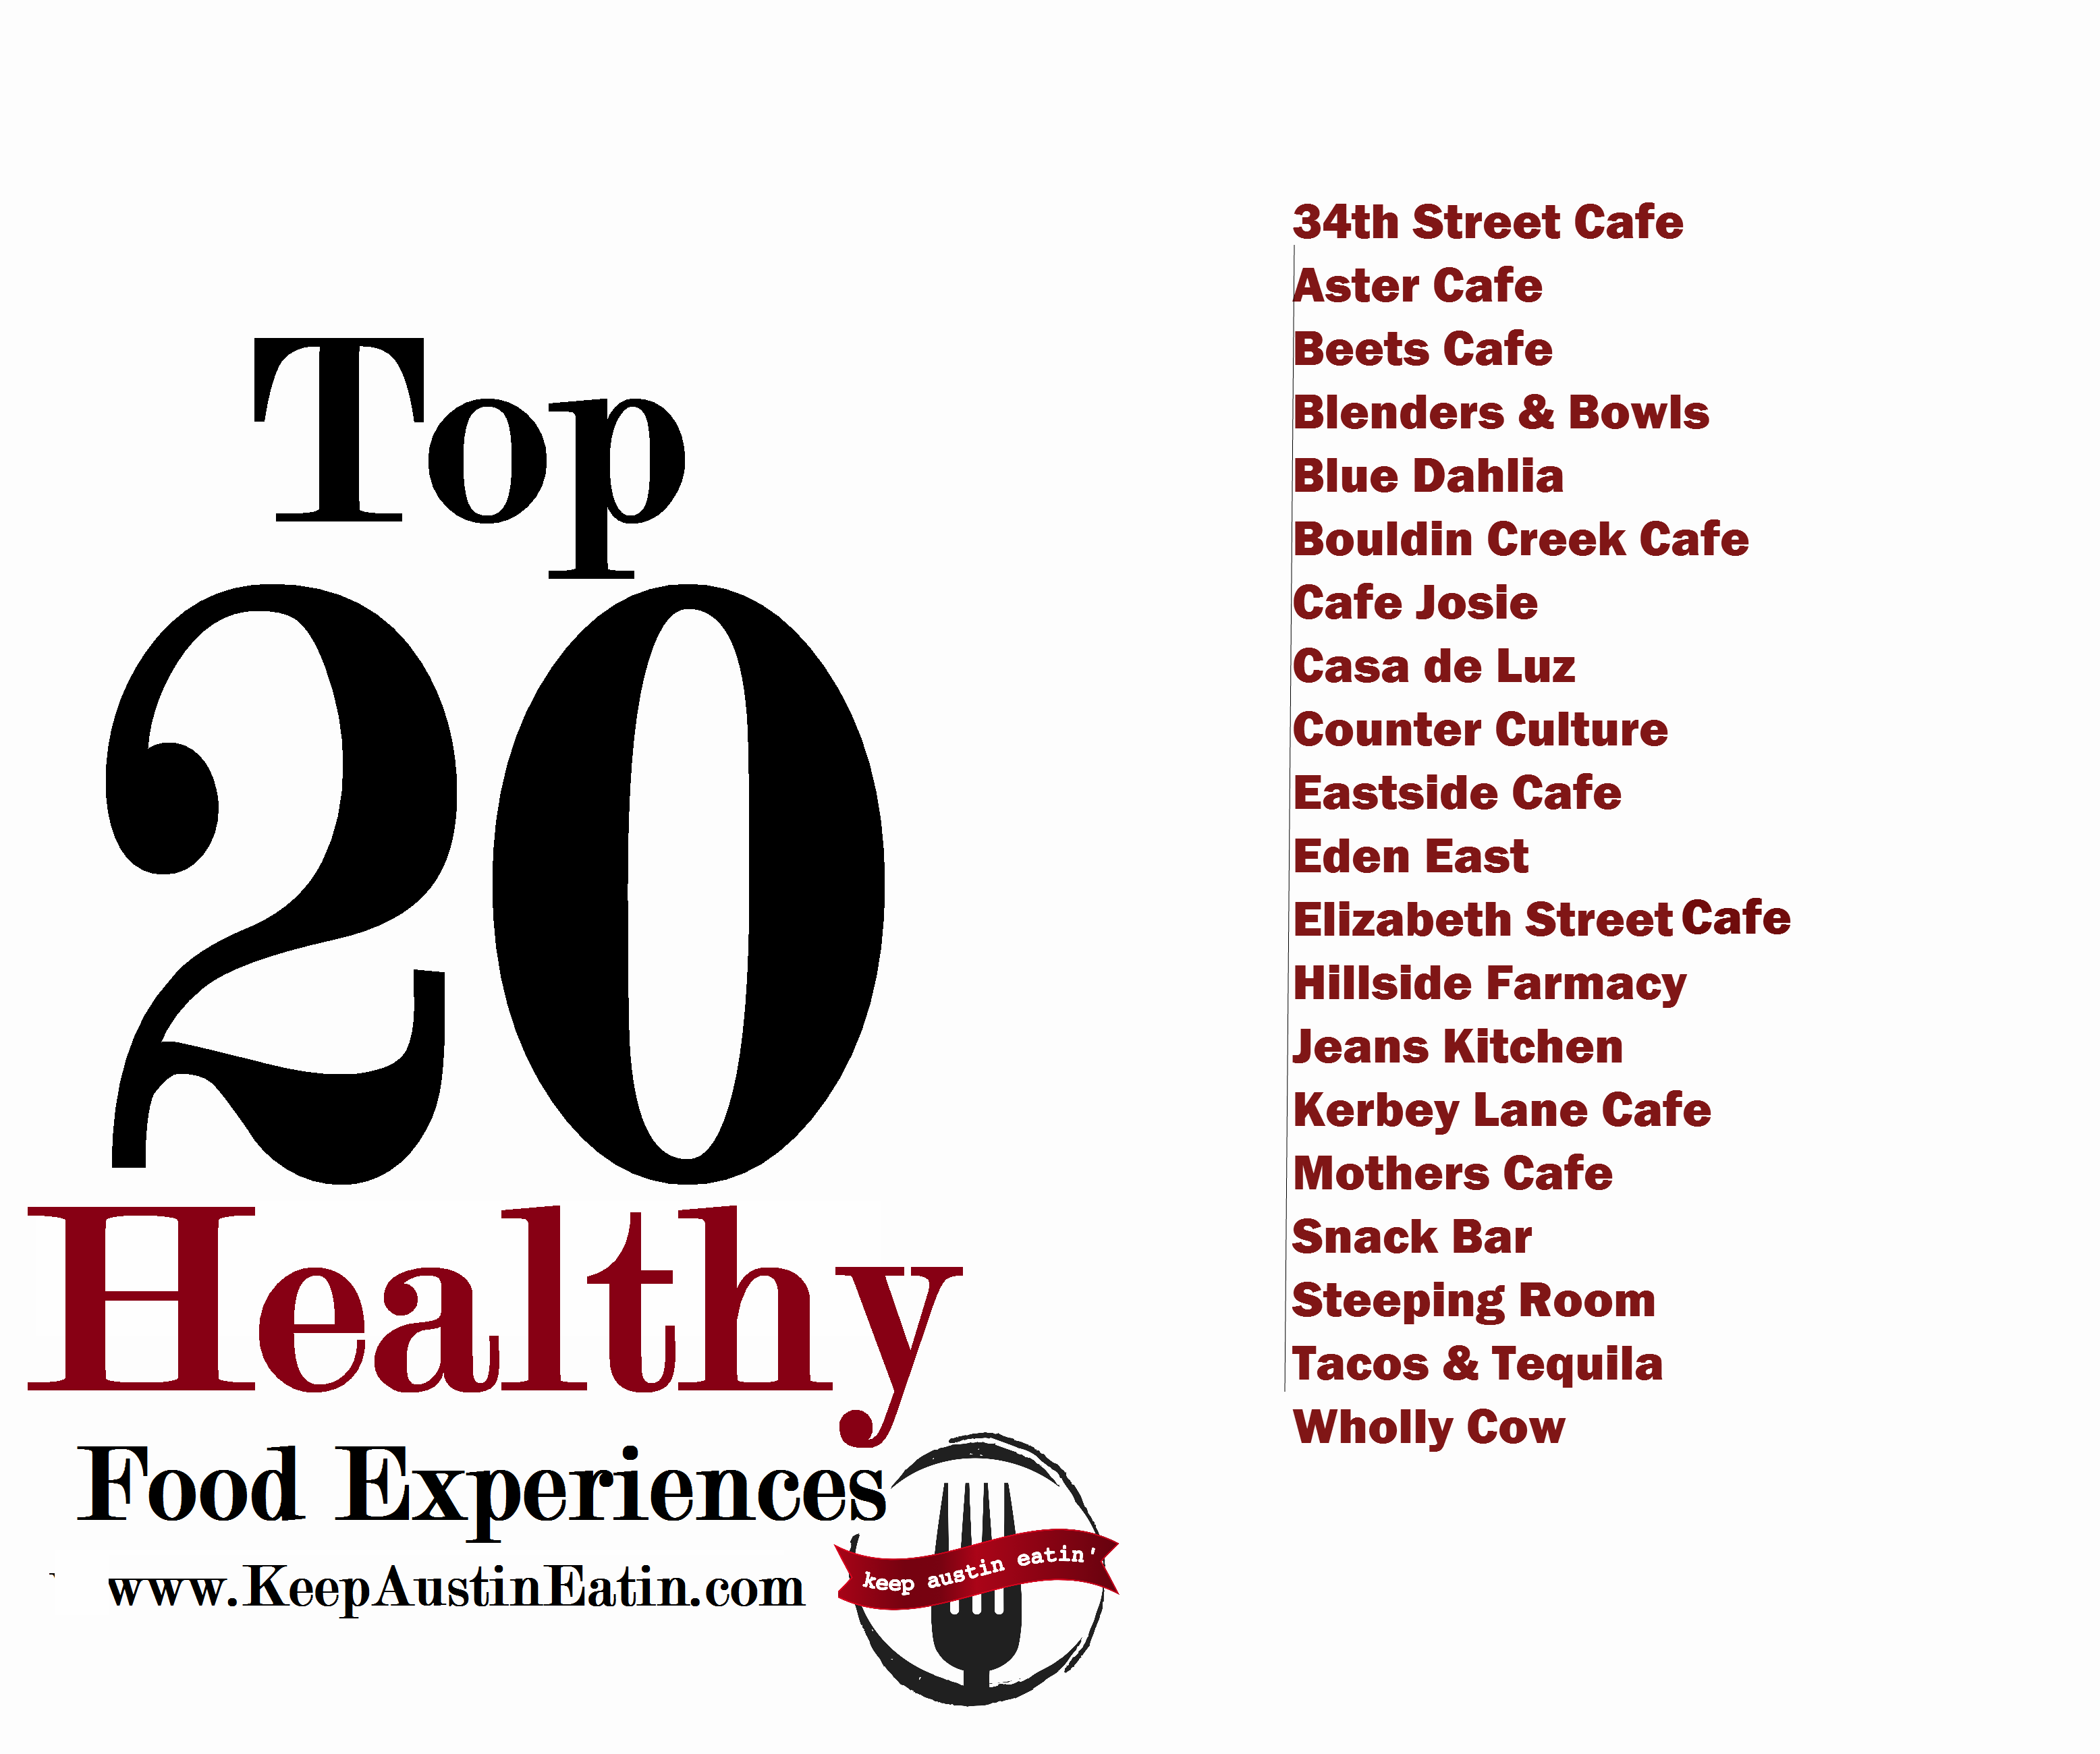 TOP 20 HEALTHY FOOD EXPERIENCES